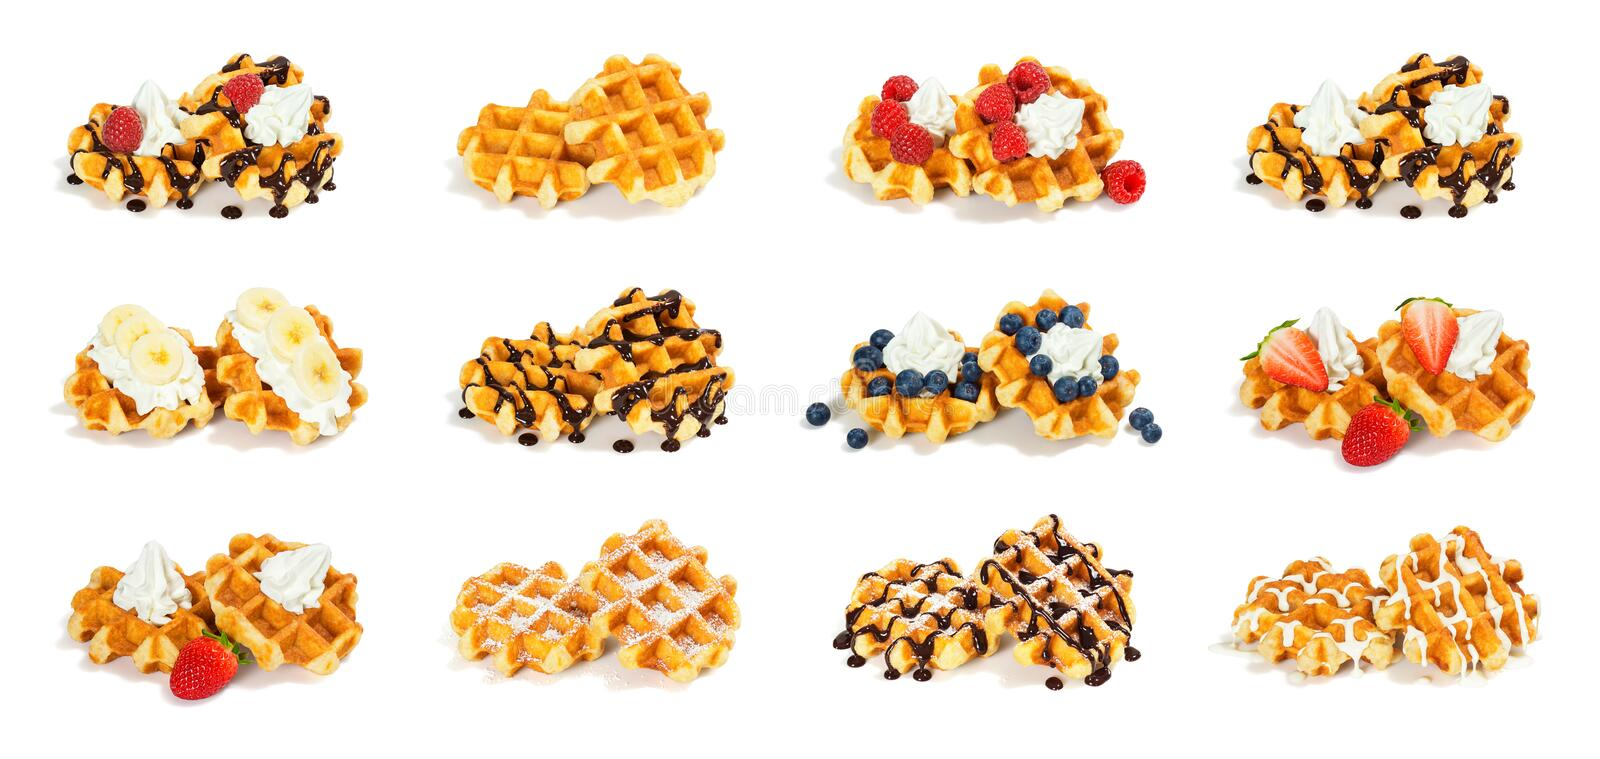 12 Liege Style Belgian Waffles with Toppings on White Background. A collection of 12 assorted pairs of Liege style Belgian waffles, each with different toppings stock photography